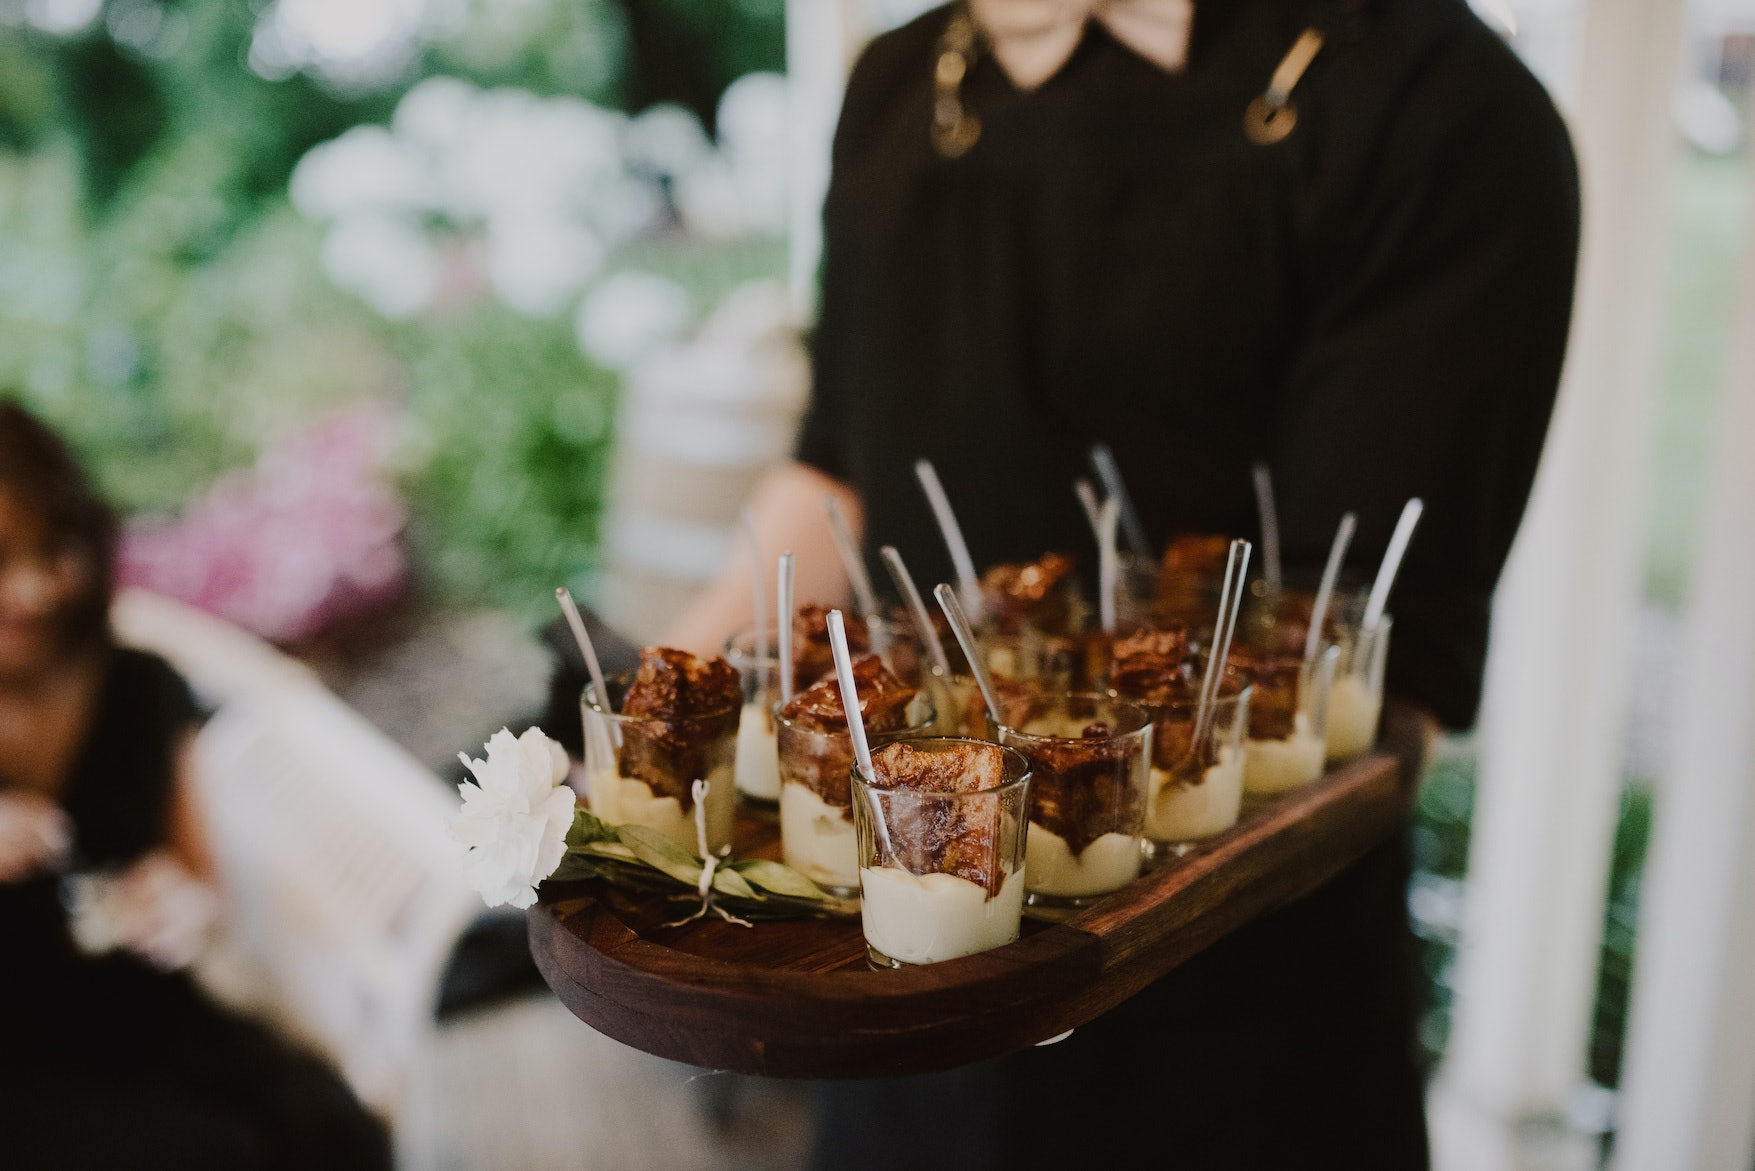 Canapés served on wooden tray